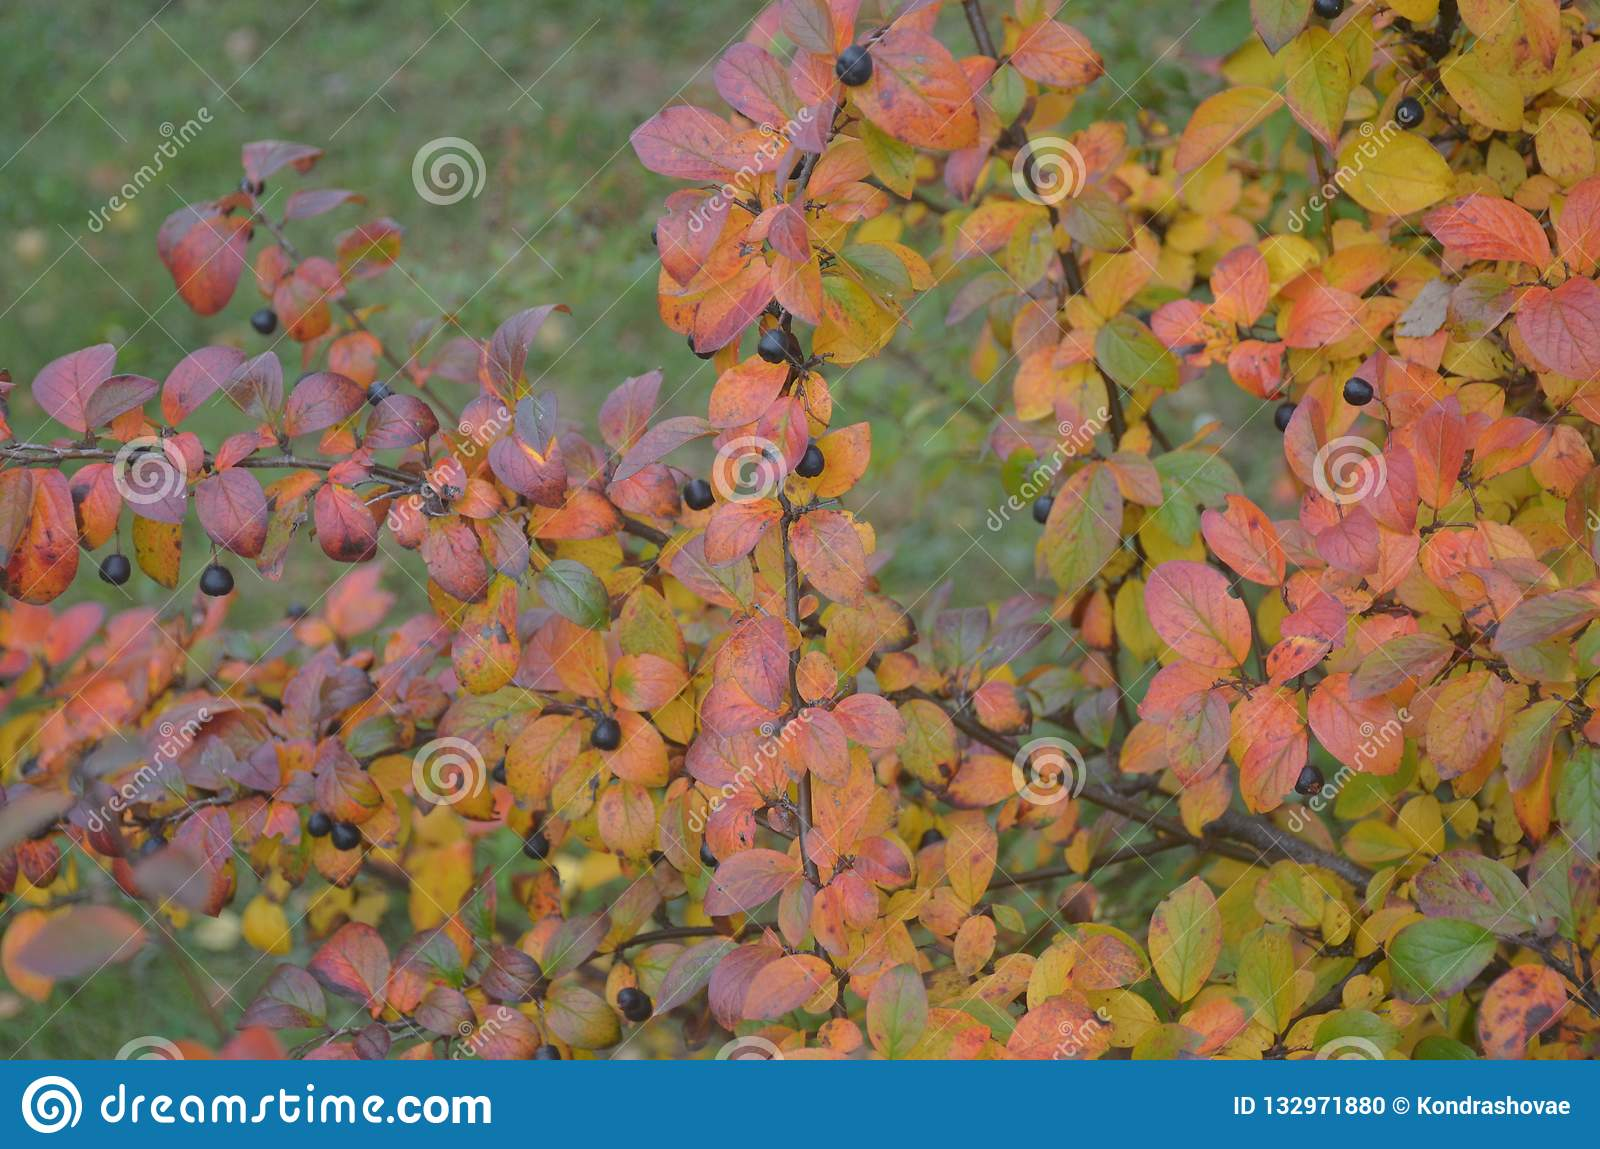 Autumn berries and leaves on the branches of a Bush